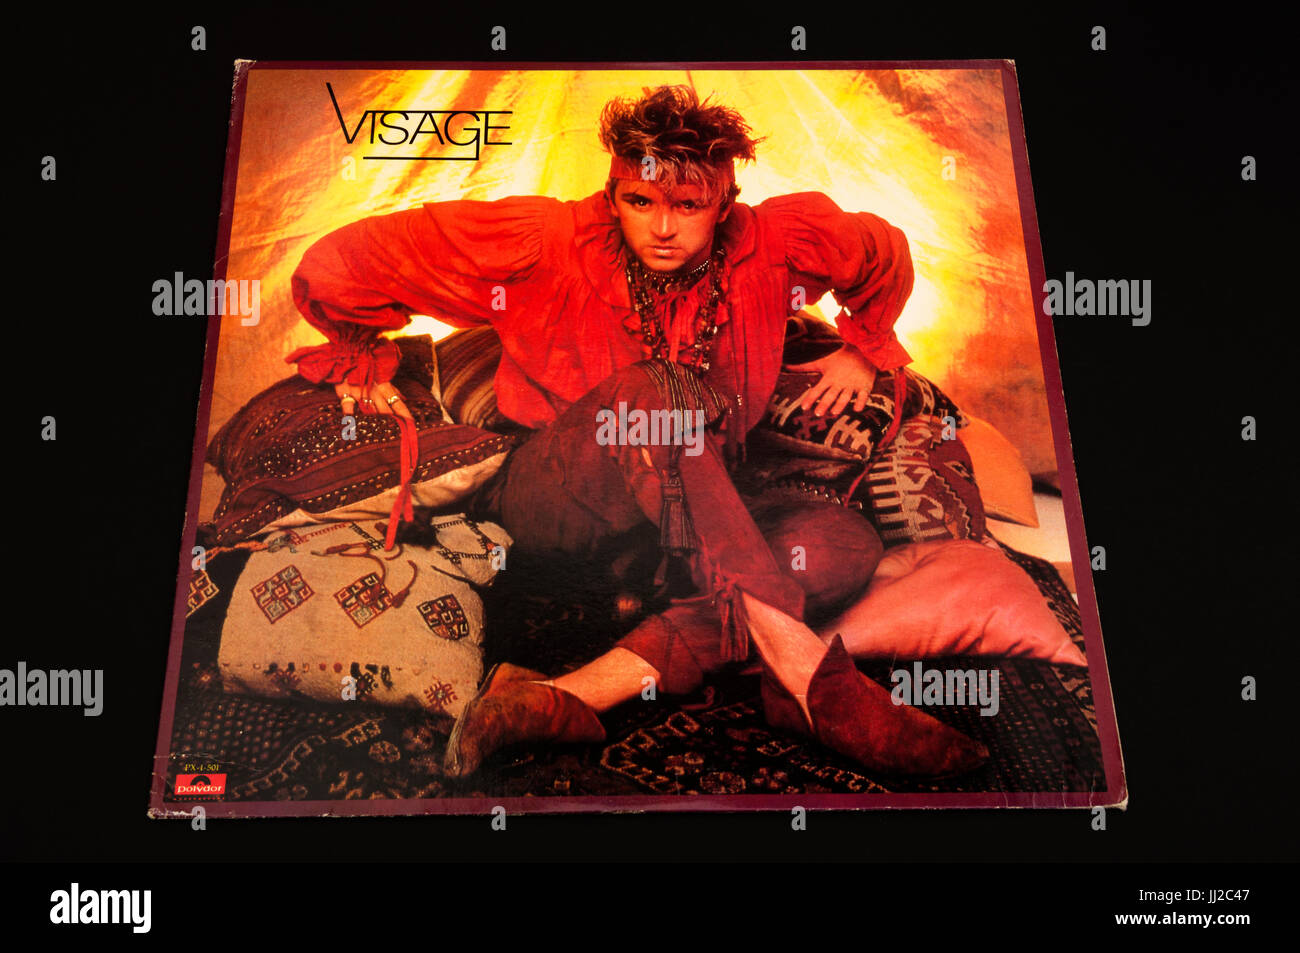 Visage Extended play vinyl record - Stock Image